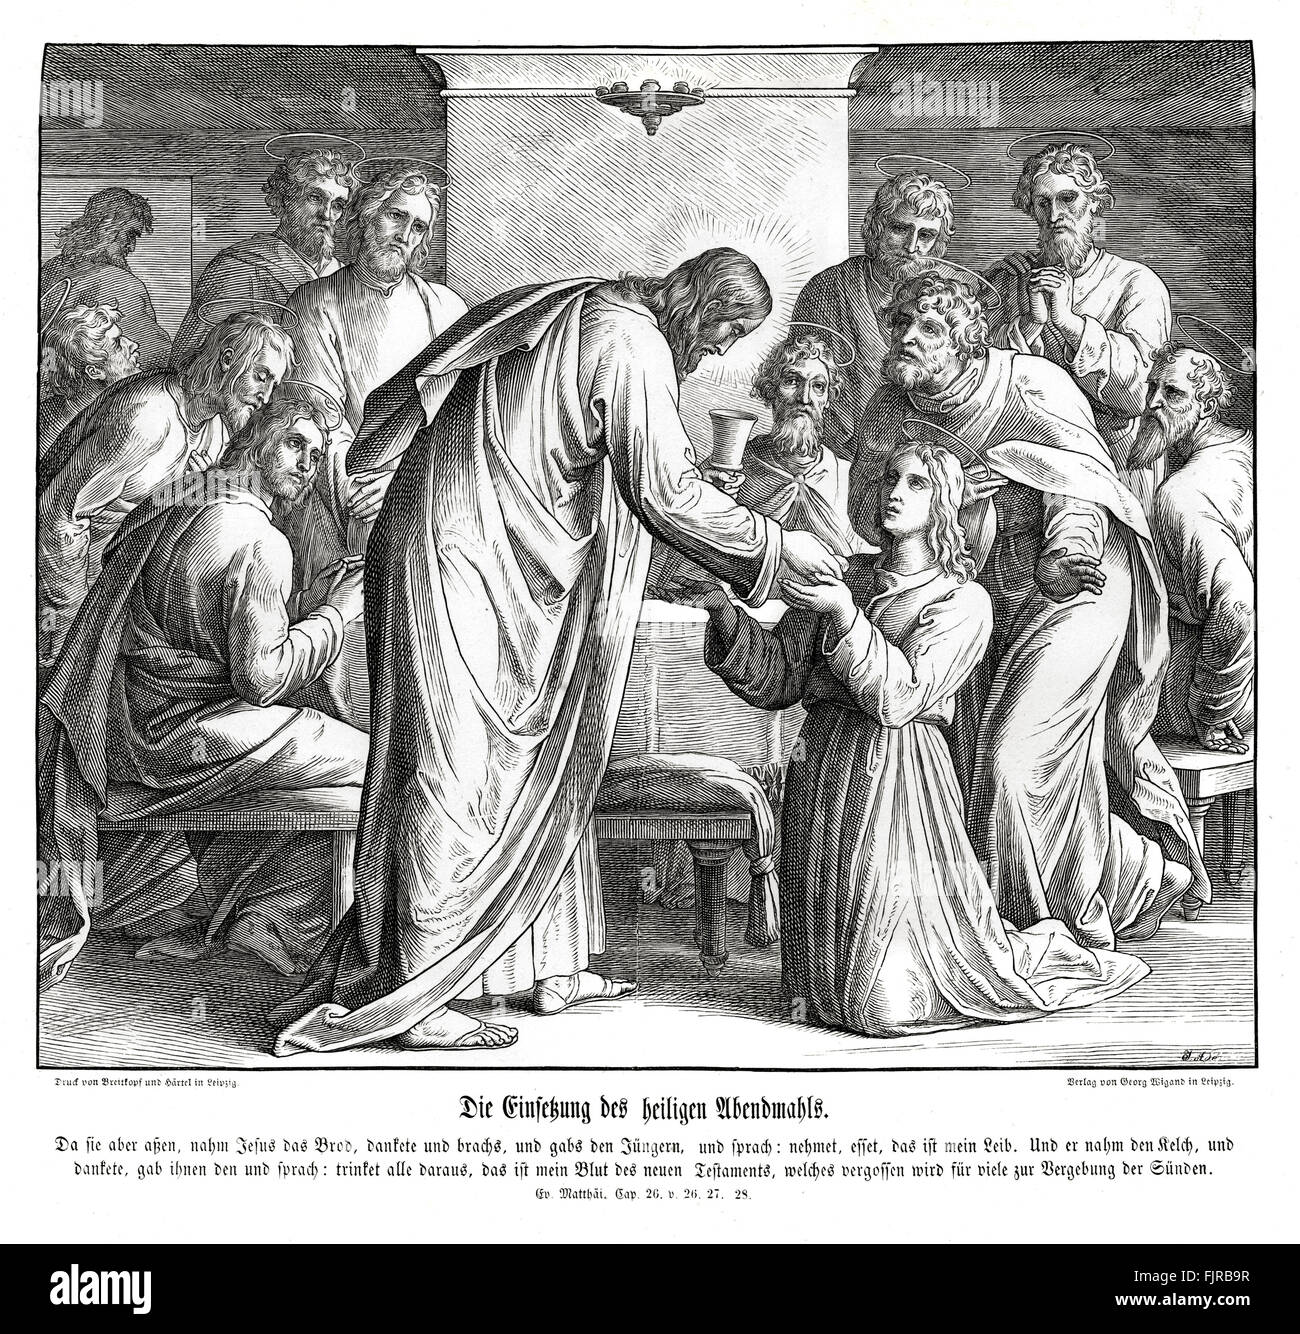 Eucharist, Gospel of Matthew chapter XXVI verses 26 - 27 'And as they were eating, Jesus took bread, and blessed - Stock Image